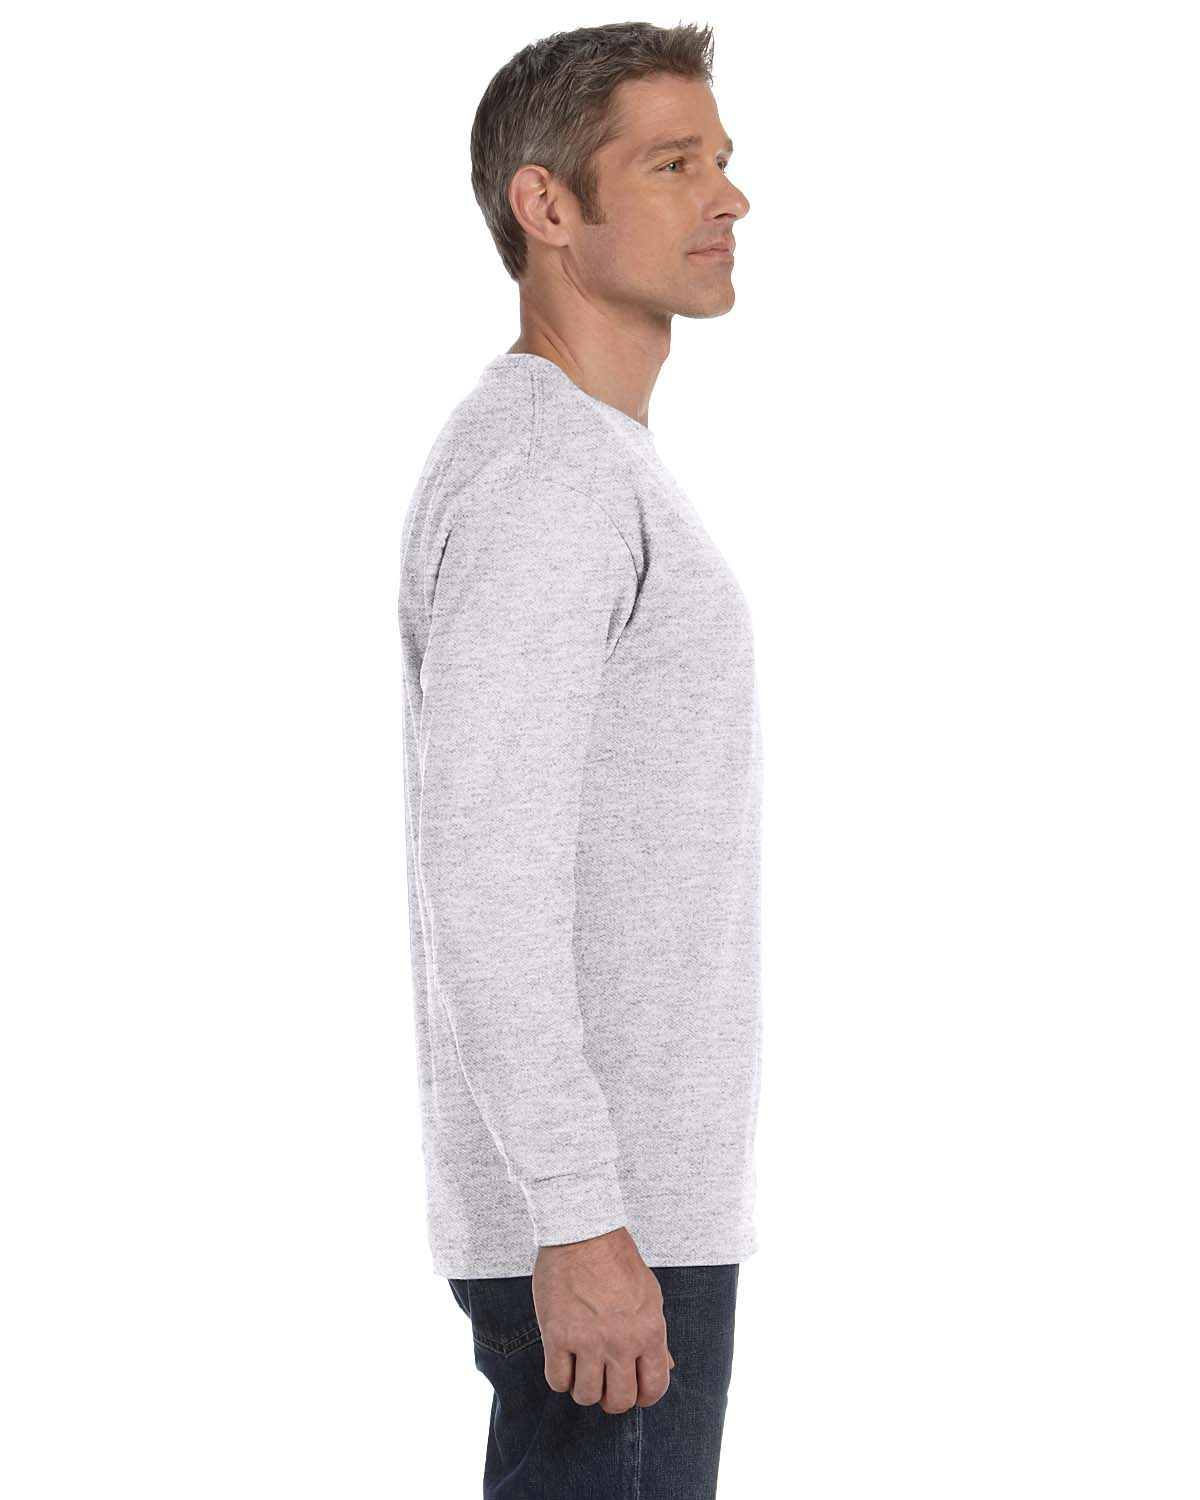 Gildan-Mens-T-Shirt-Long-Sleeve-Heavy-Cotton-5-3-oz-S-XL-R-G540-5400 thumbnail 6